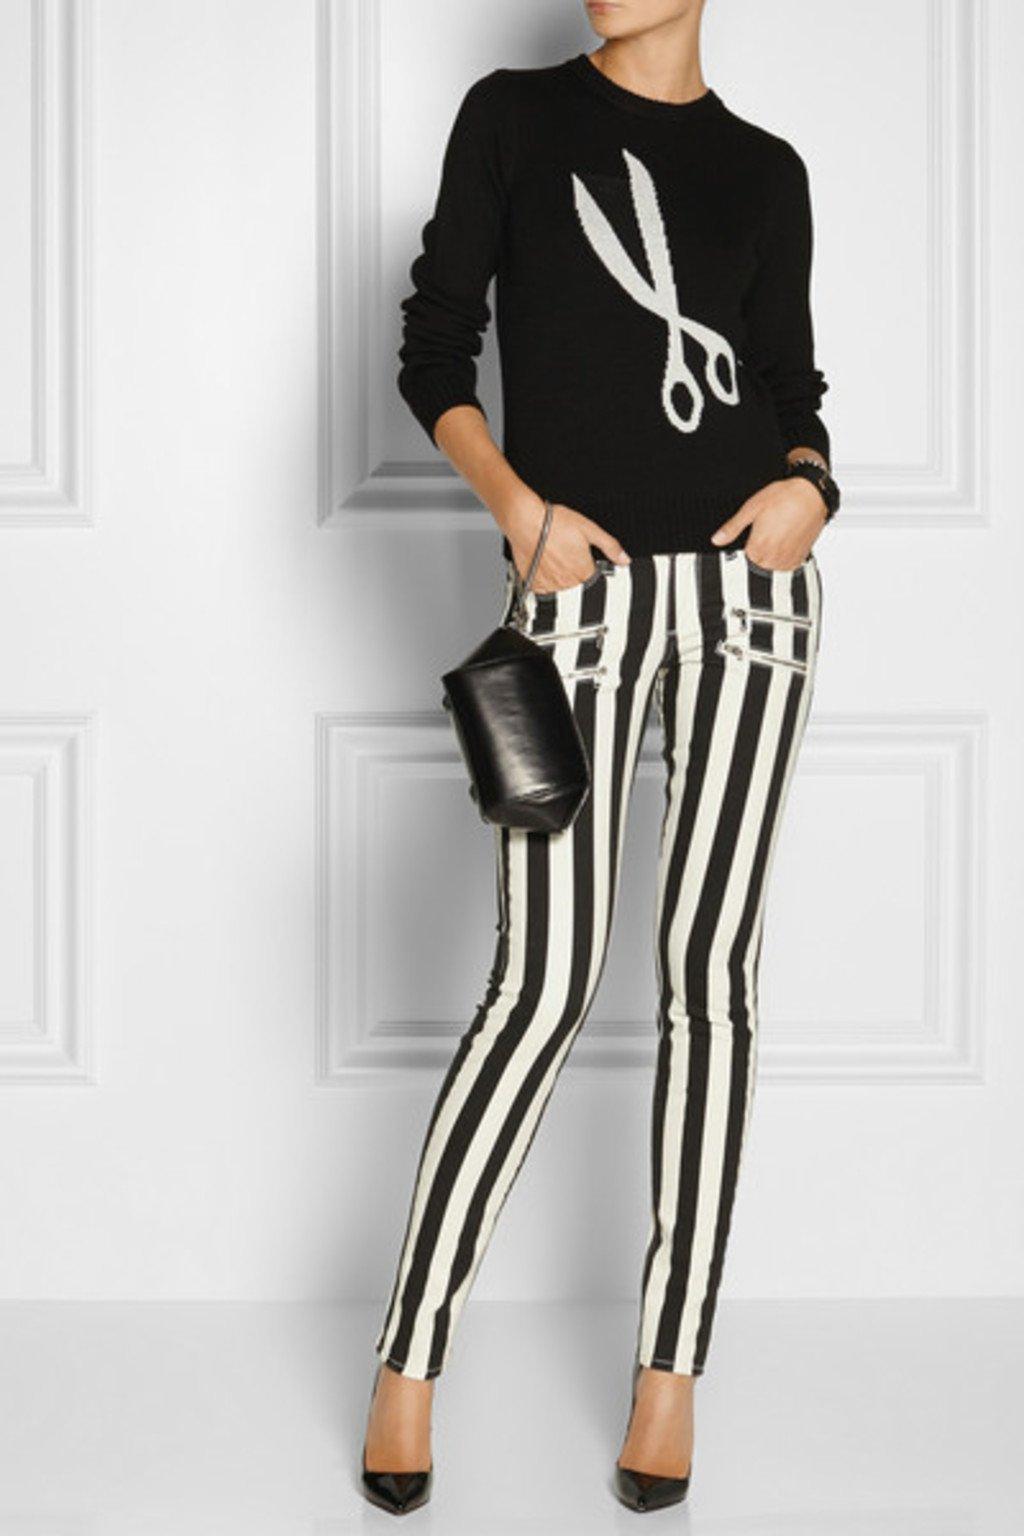 BLACK AND WHITE CONTRAST Photo Courtesy of Paige Denim